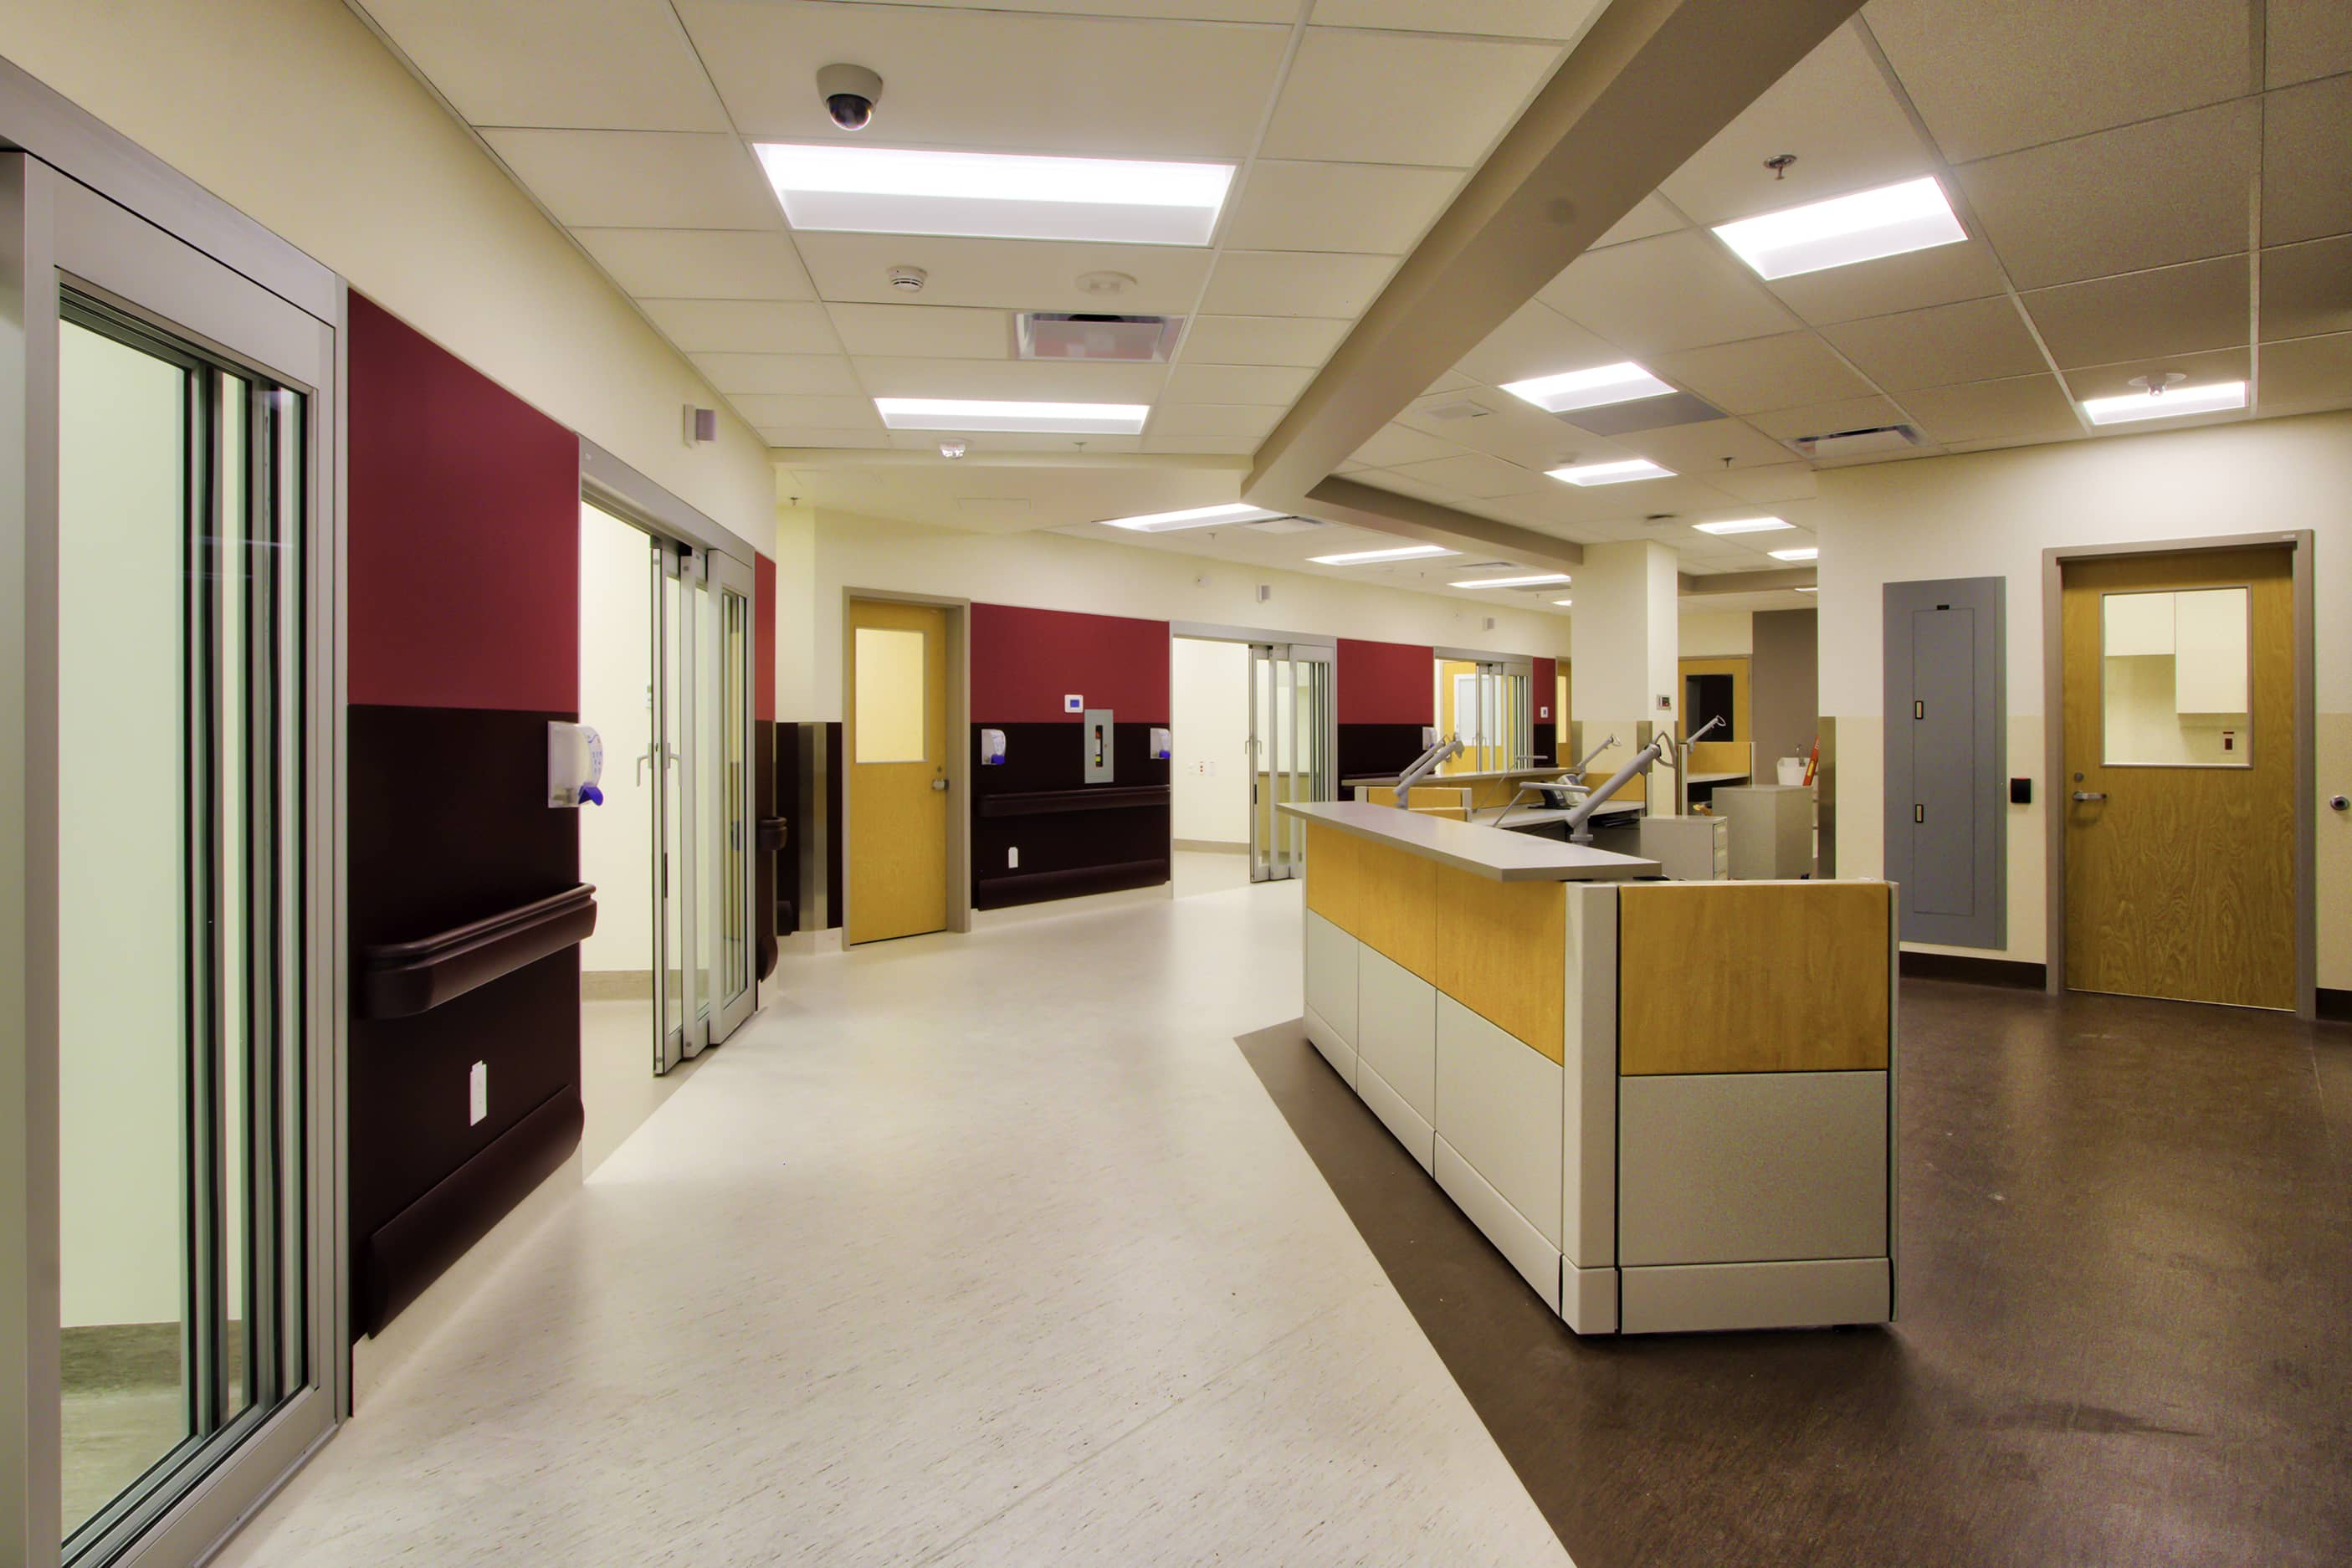 bbp whitehorse general hospital emergency department expansion interior